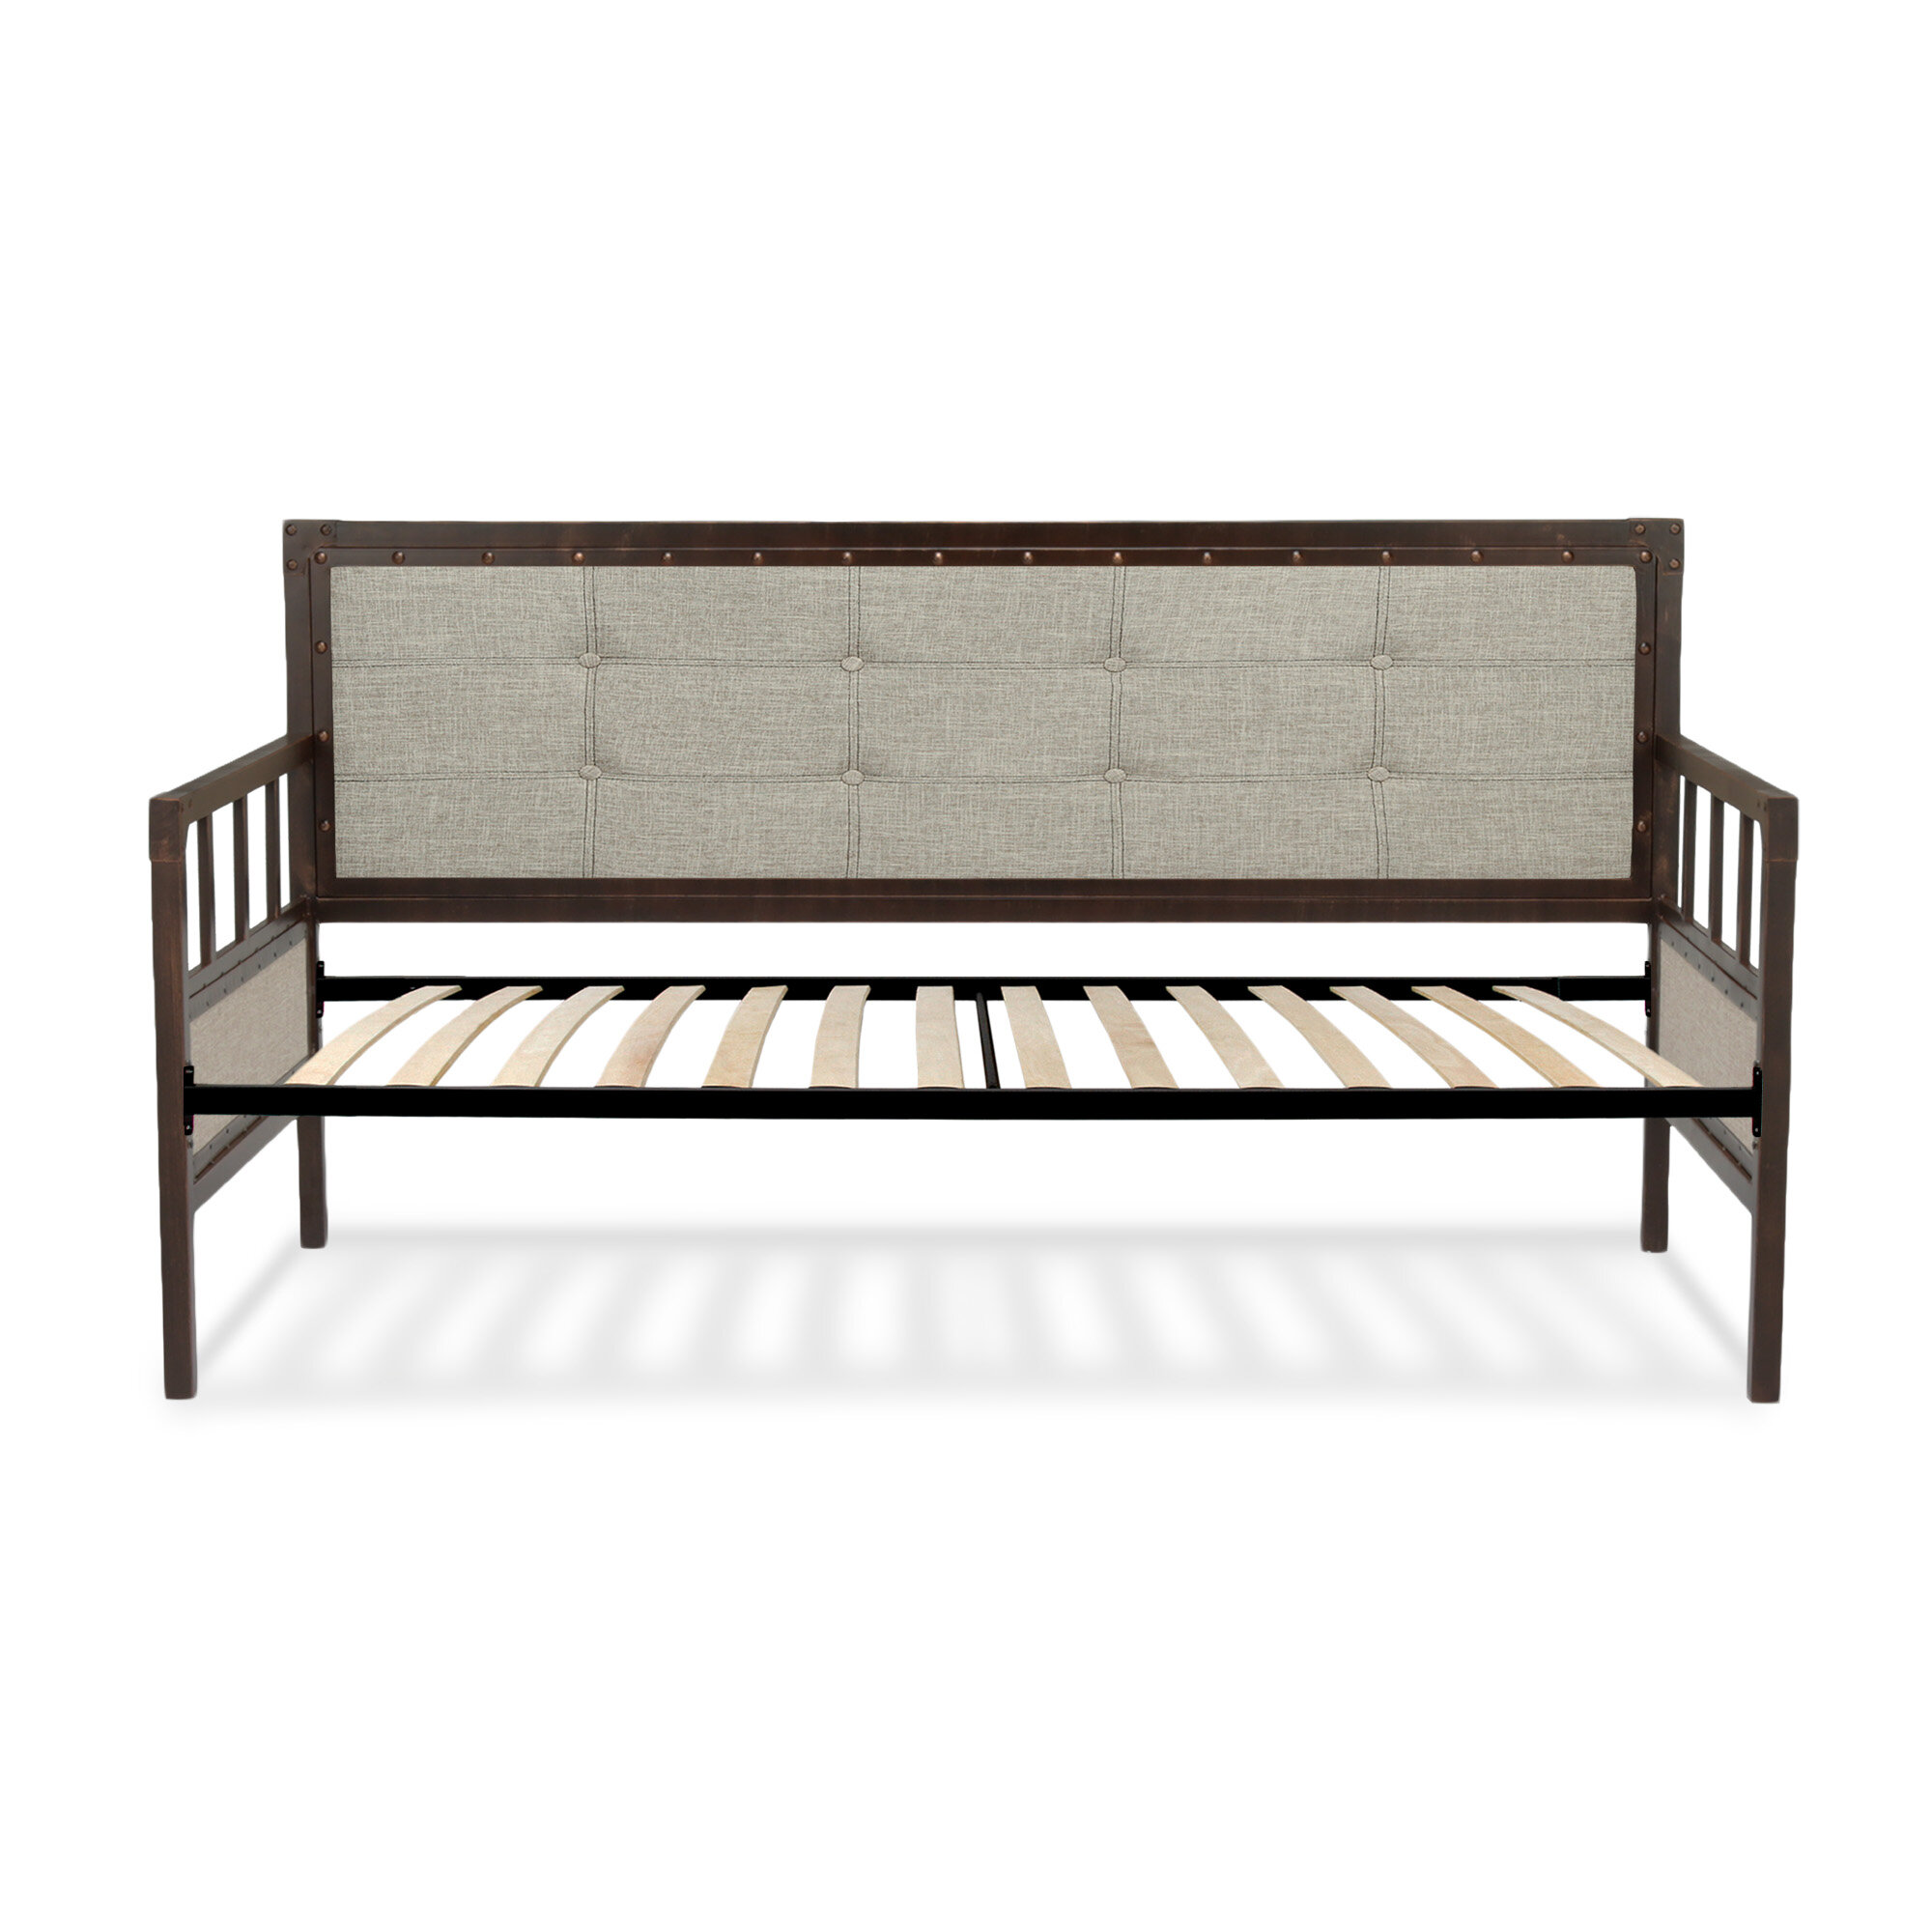 of style seating american id benches daybed in img furniture hans at olsen the for l sale f bench